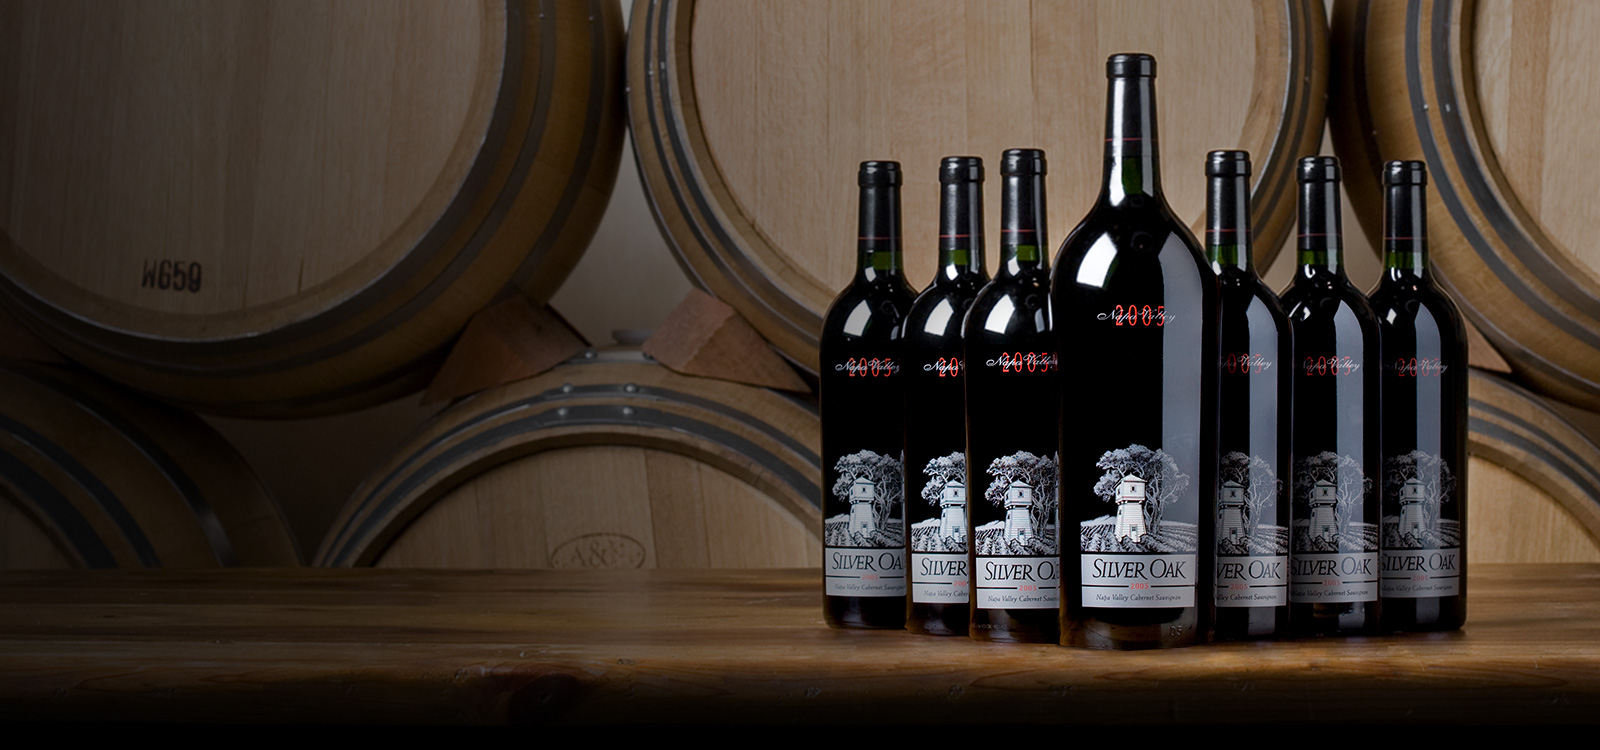 Silver Oak organic search marketing success